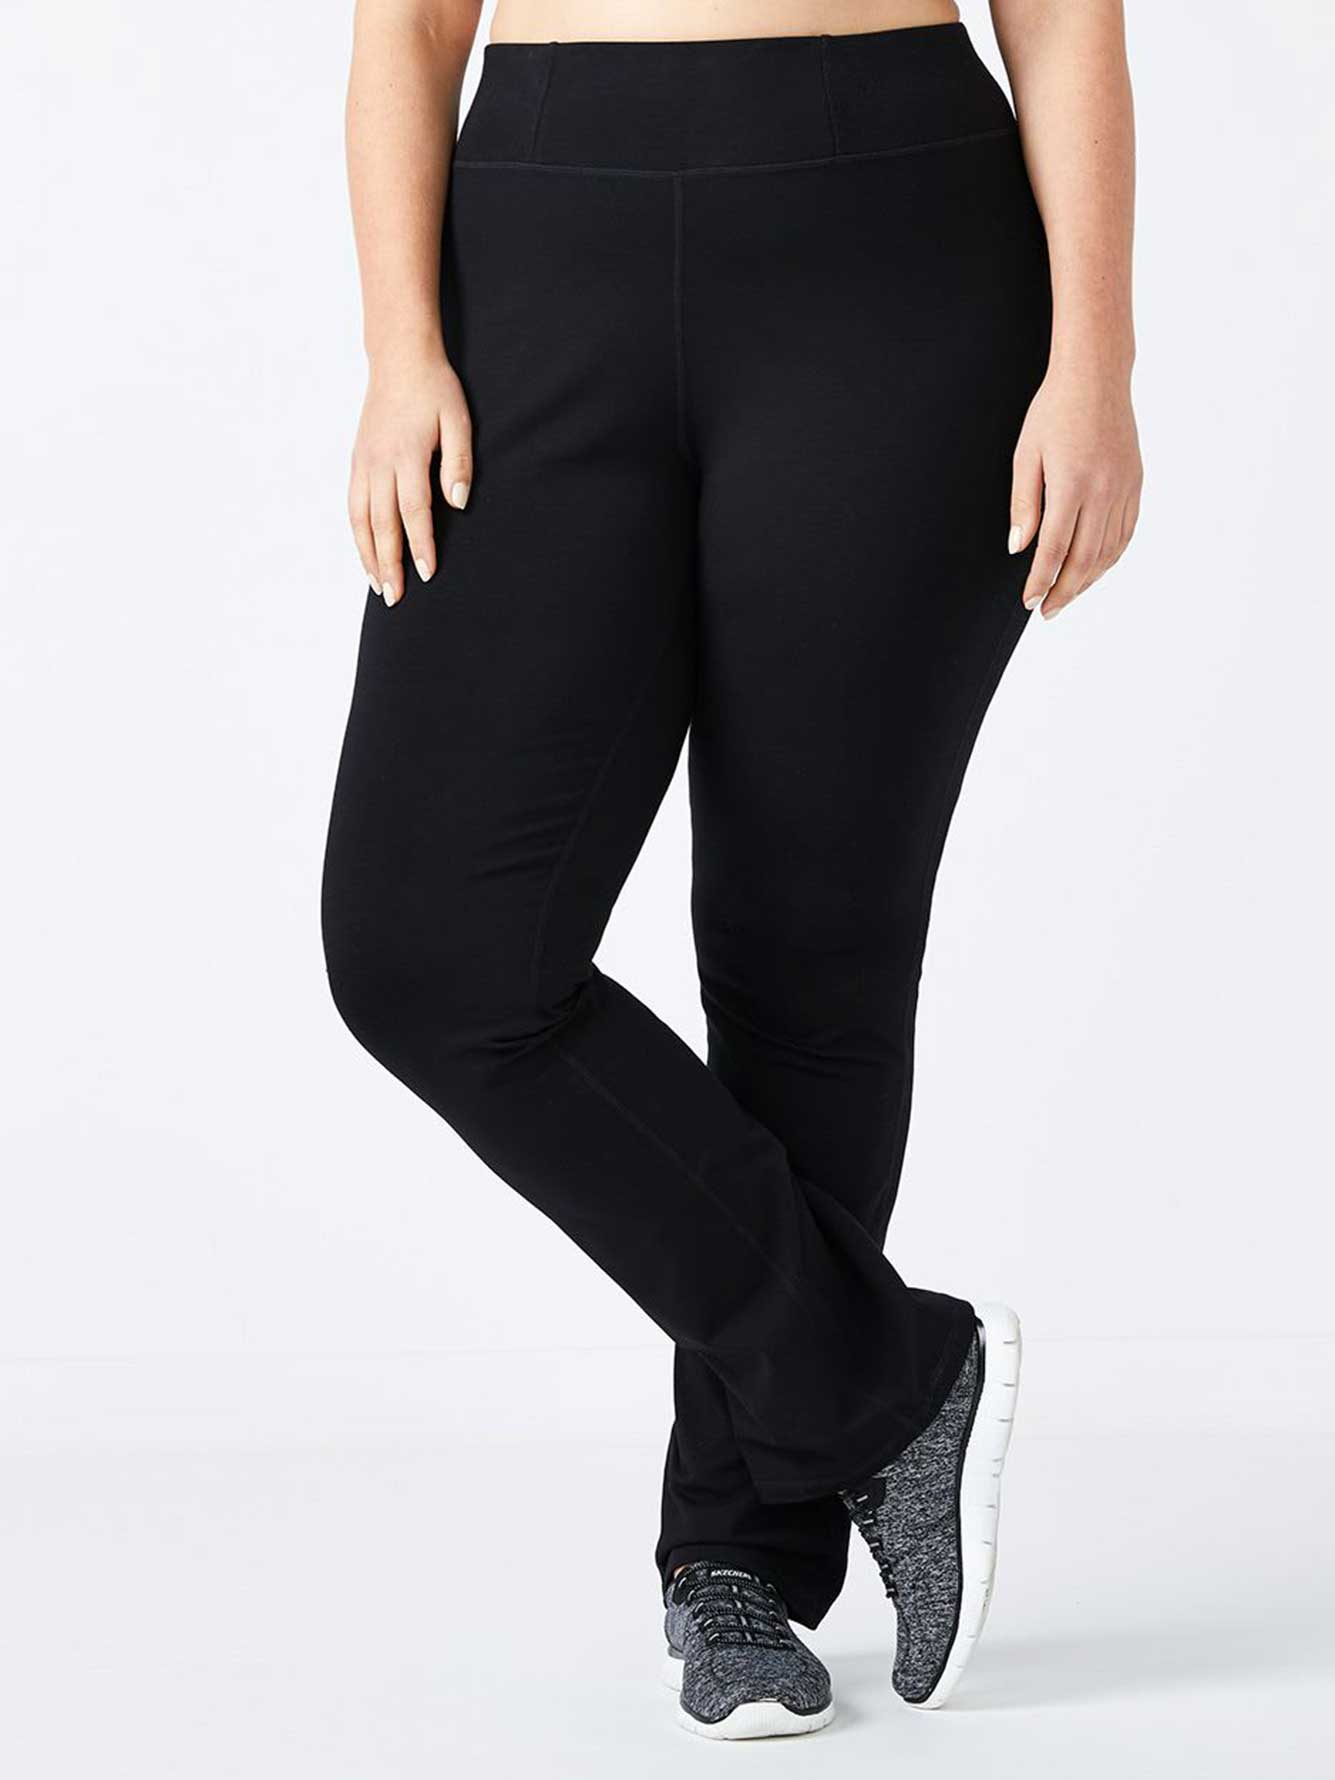 Pantalon de yoga taille plus basique - Essentials